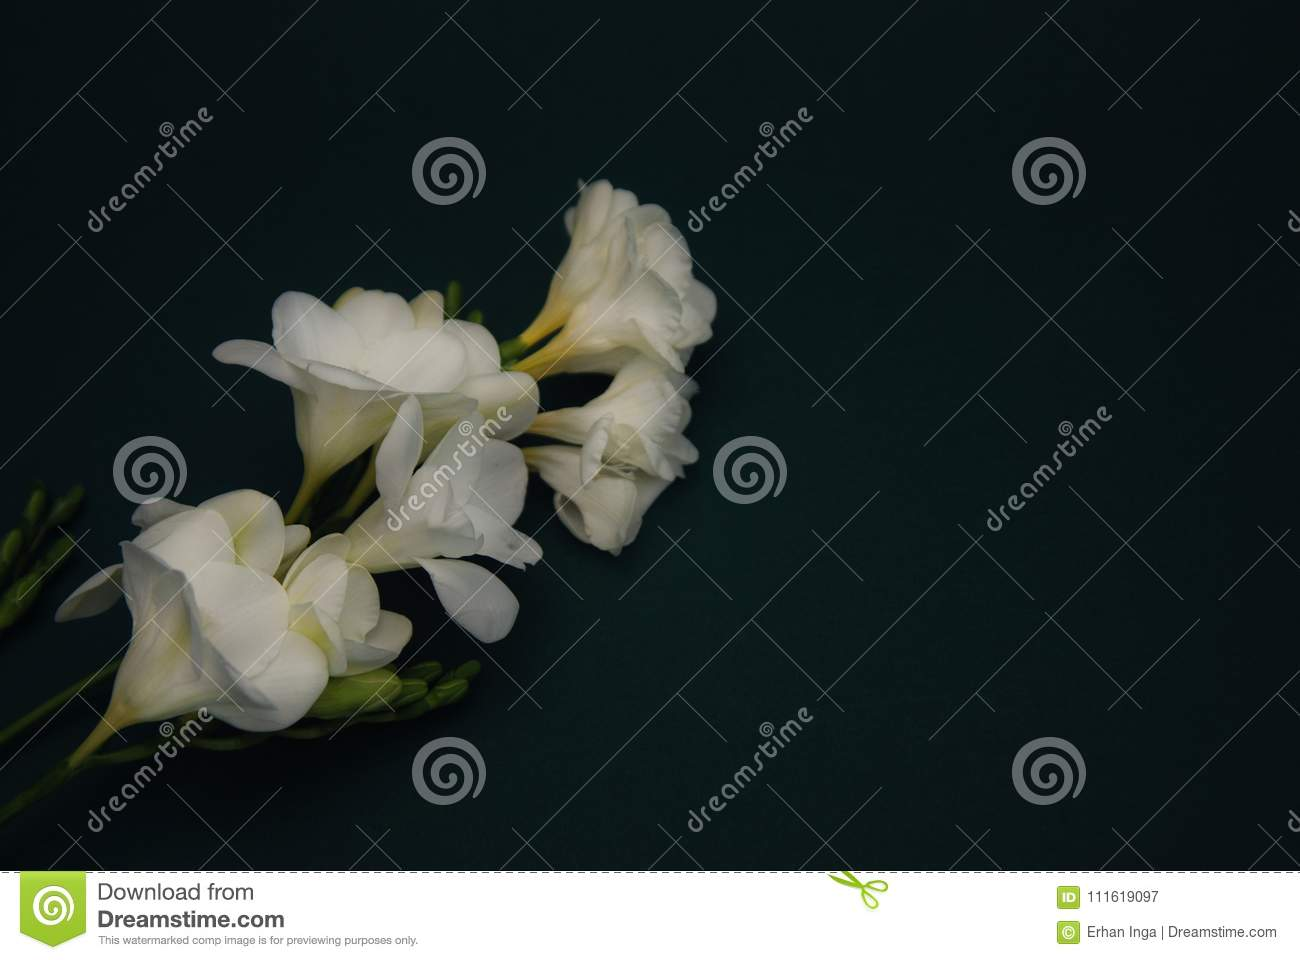 White Freesia Bouquet of Flowers on Black Background. Copy Space. close up.